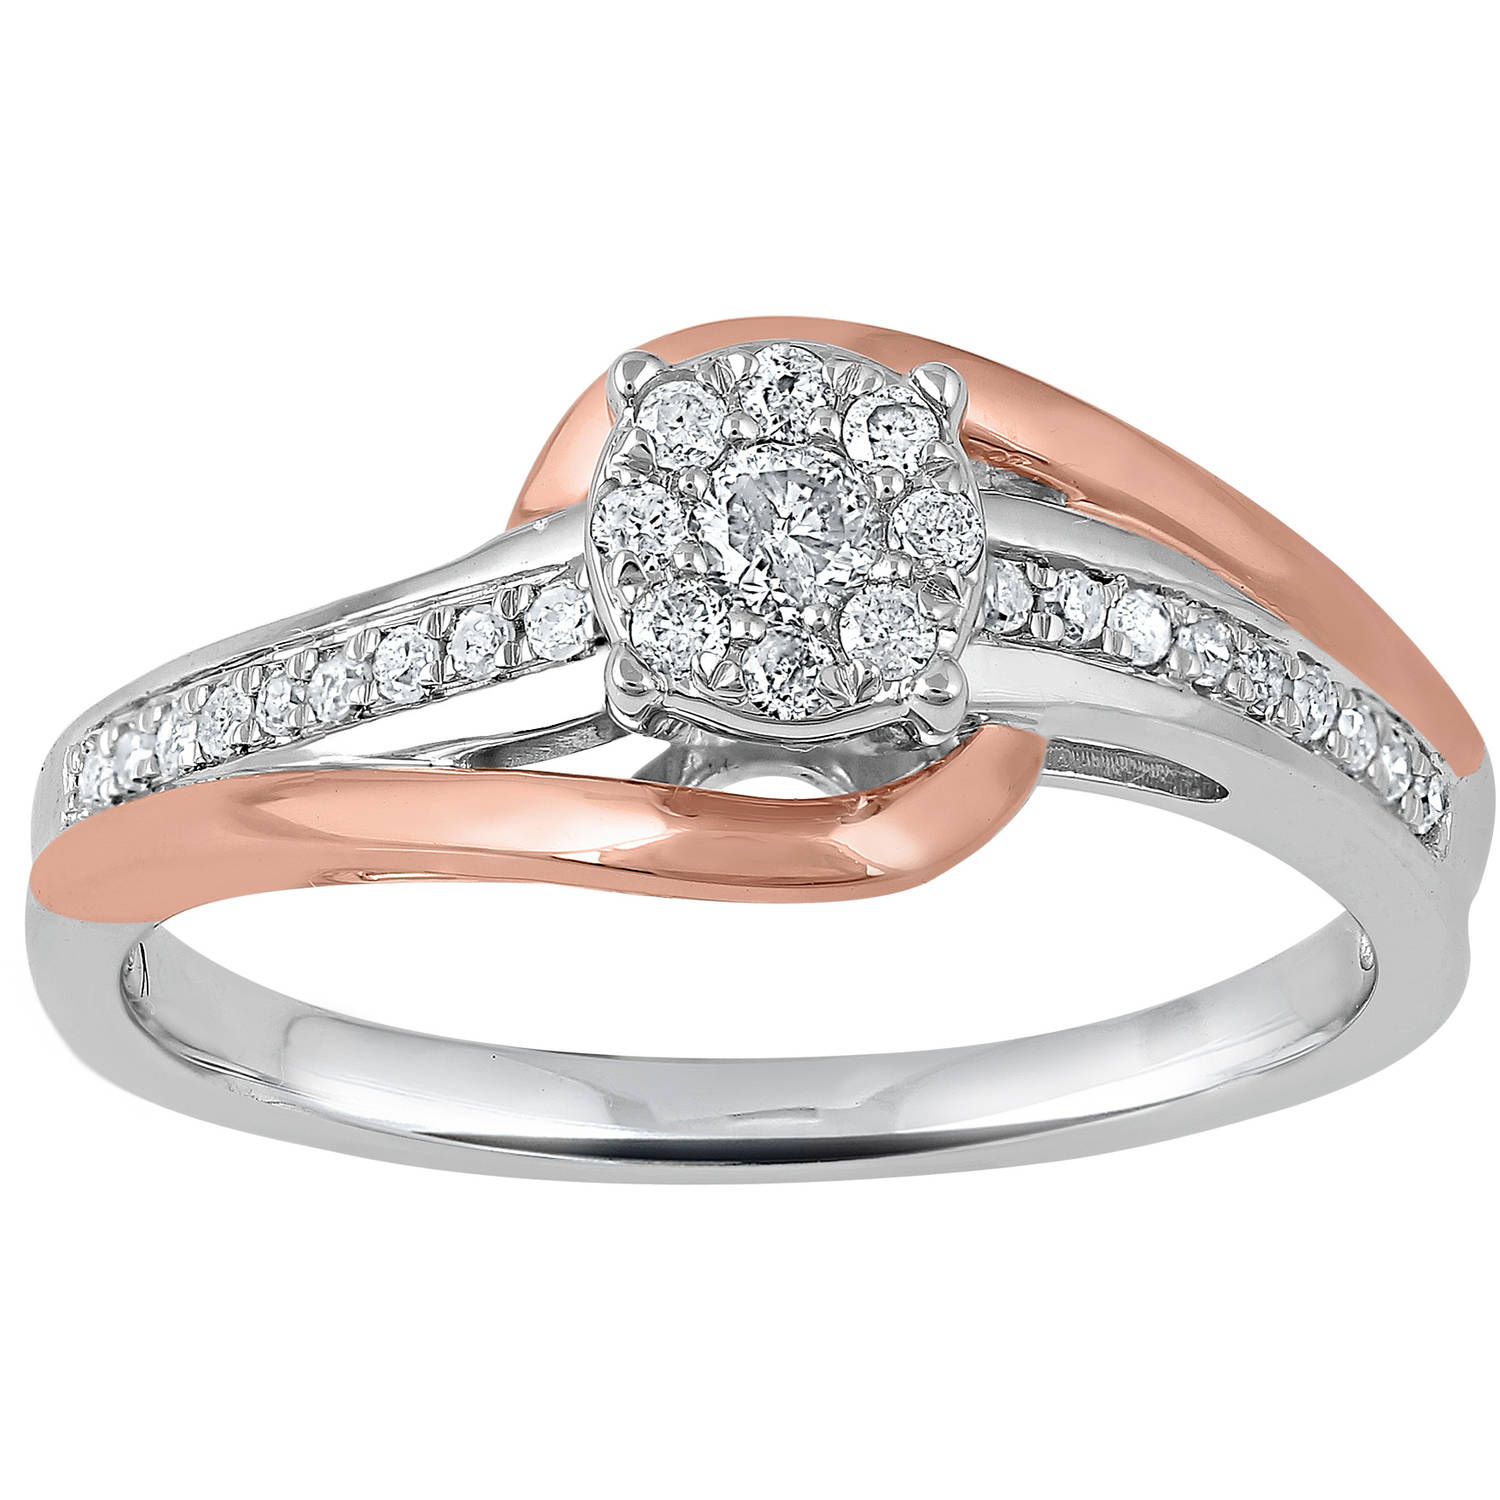 Heart 2 Heart 1/4 Carat T.W. Sterling Silver with 14kt Pink Gold Plating Bridal Ring